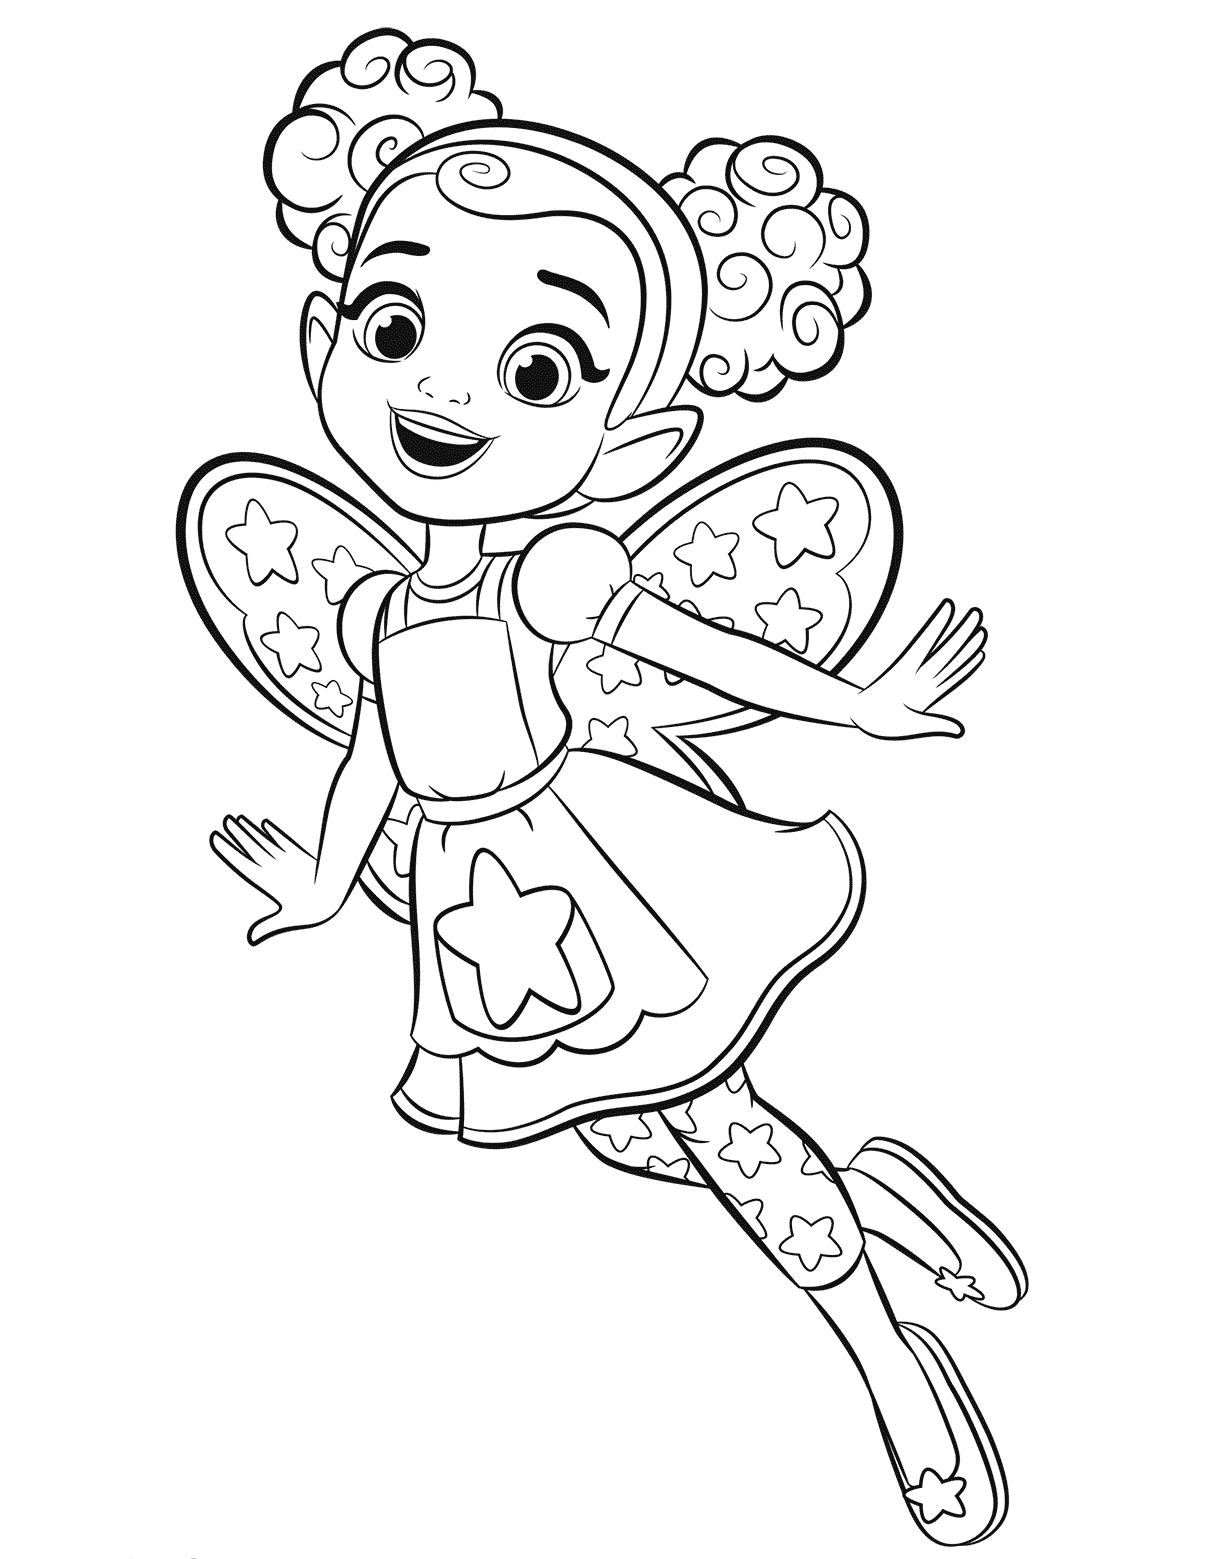 Dazzle From Butterbeans Cafe Coloring Sheet